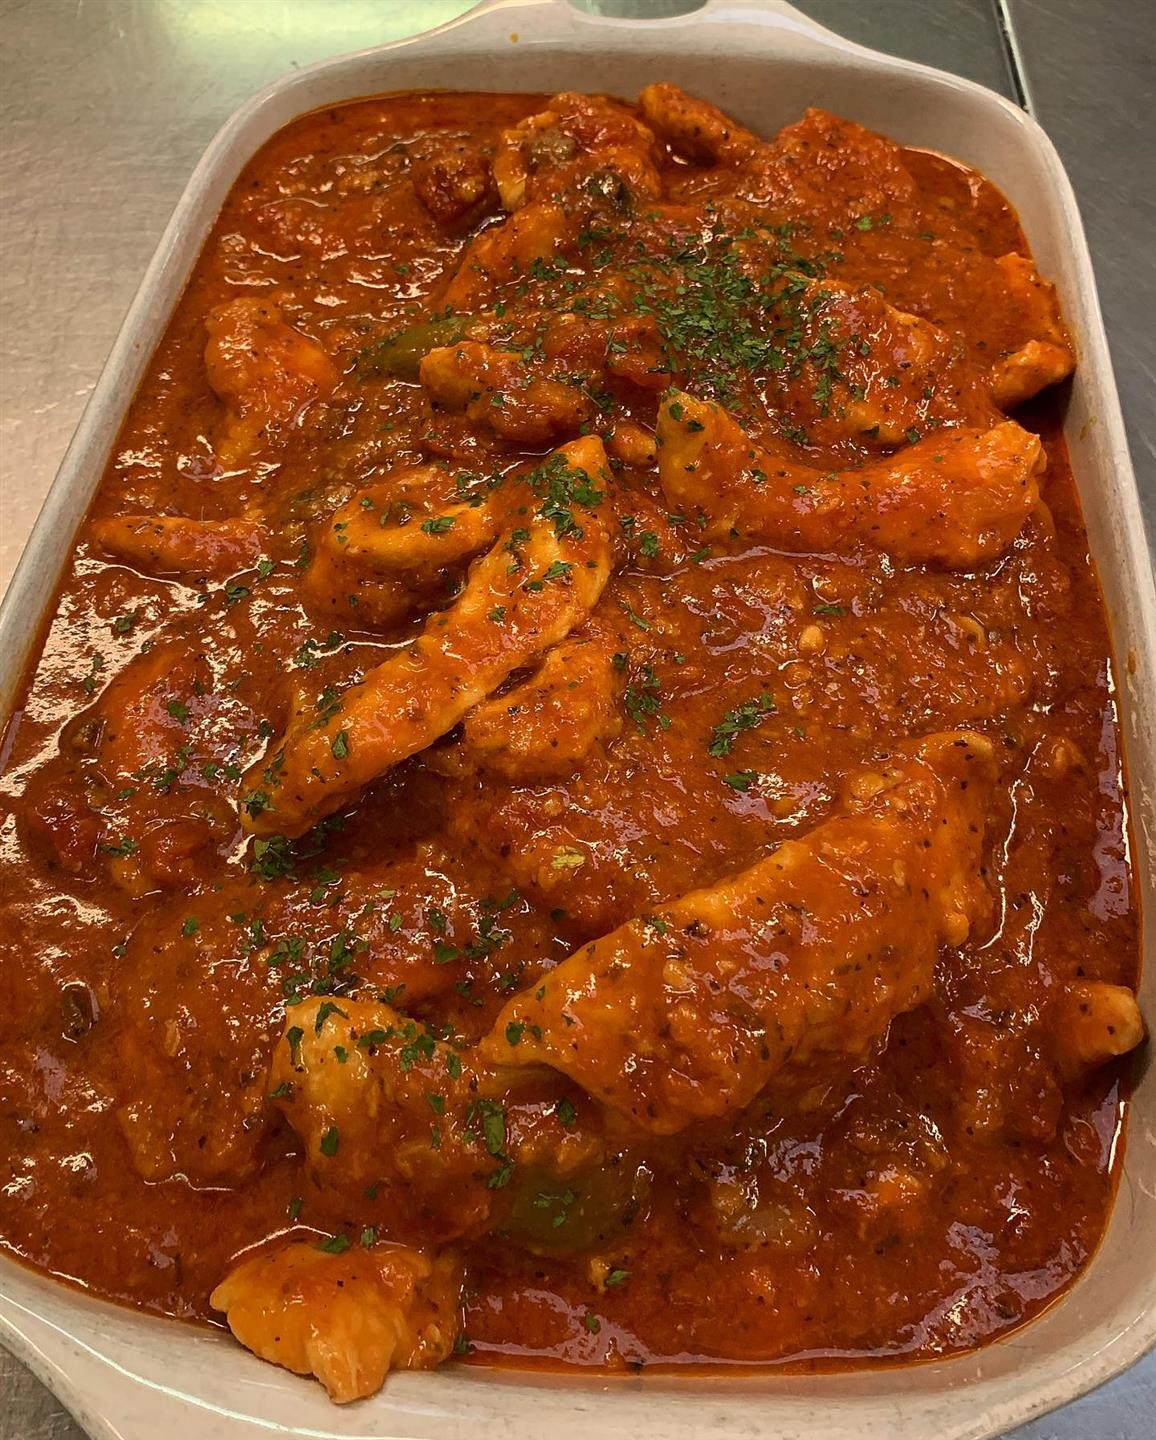 chicken and vegetables in a tomato sauce